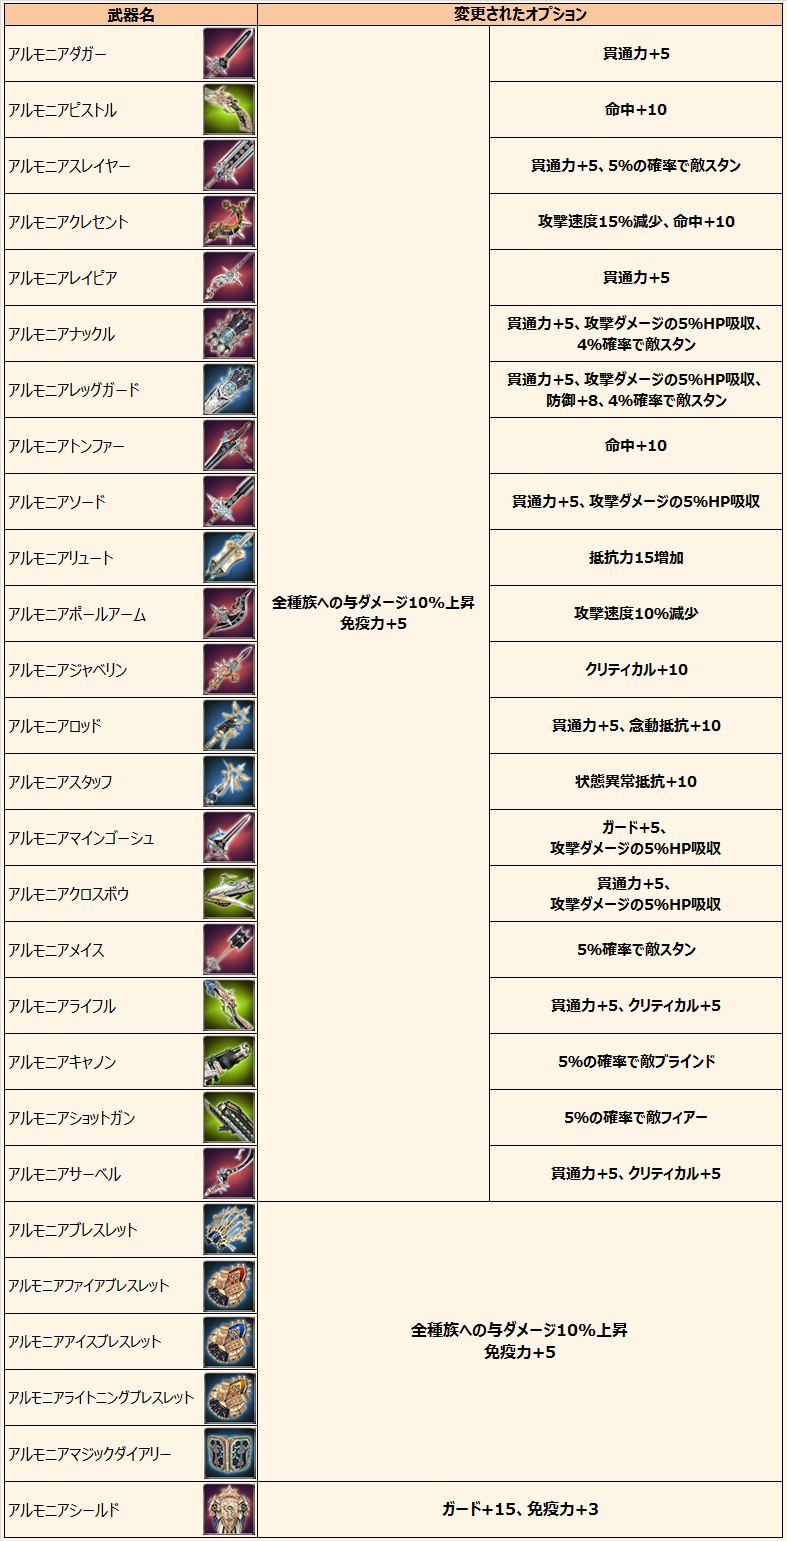 20140613124344f76.png